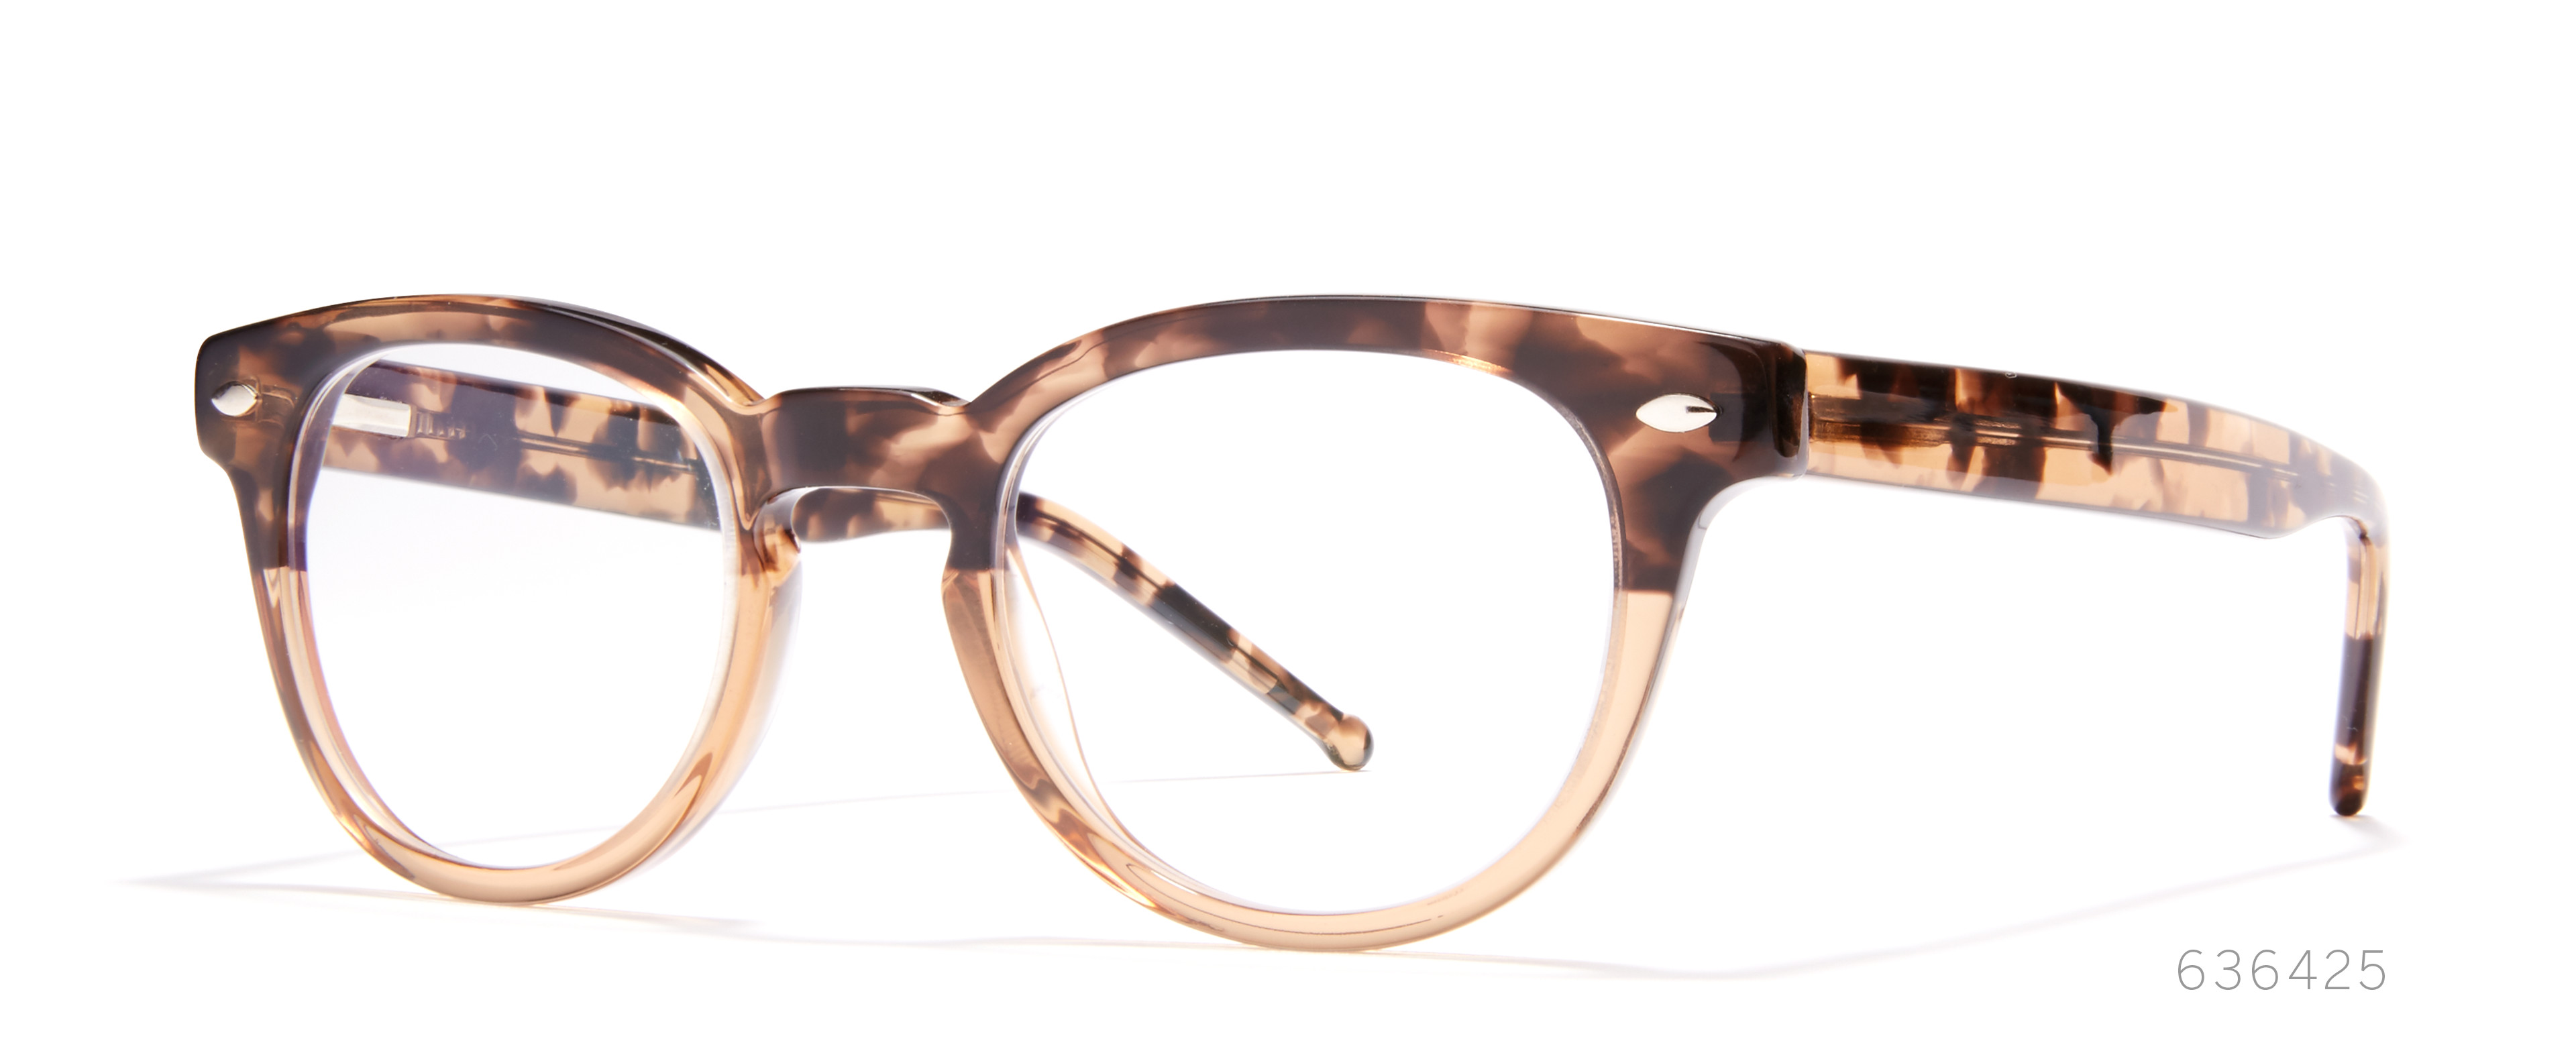 tortoiseshell statement glasses